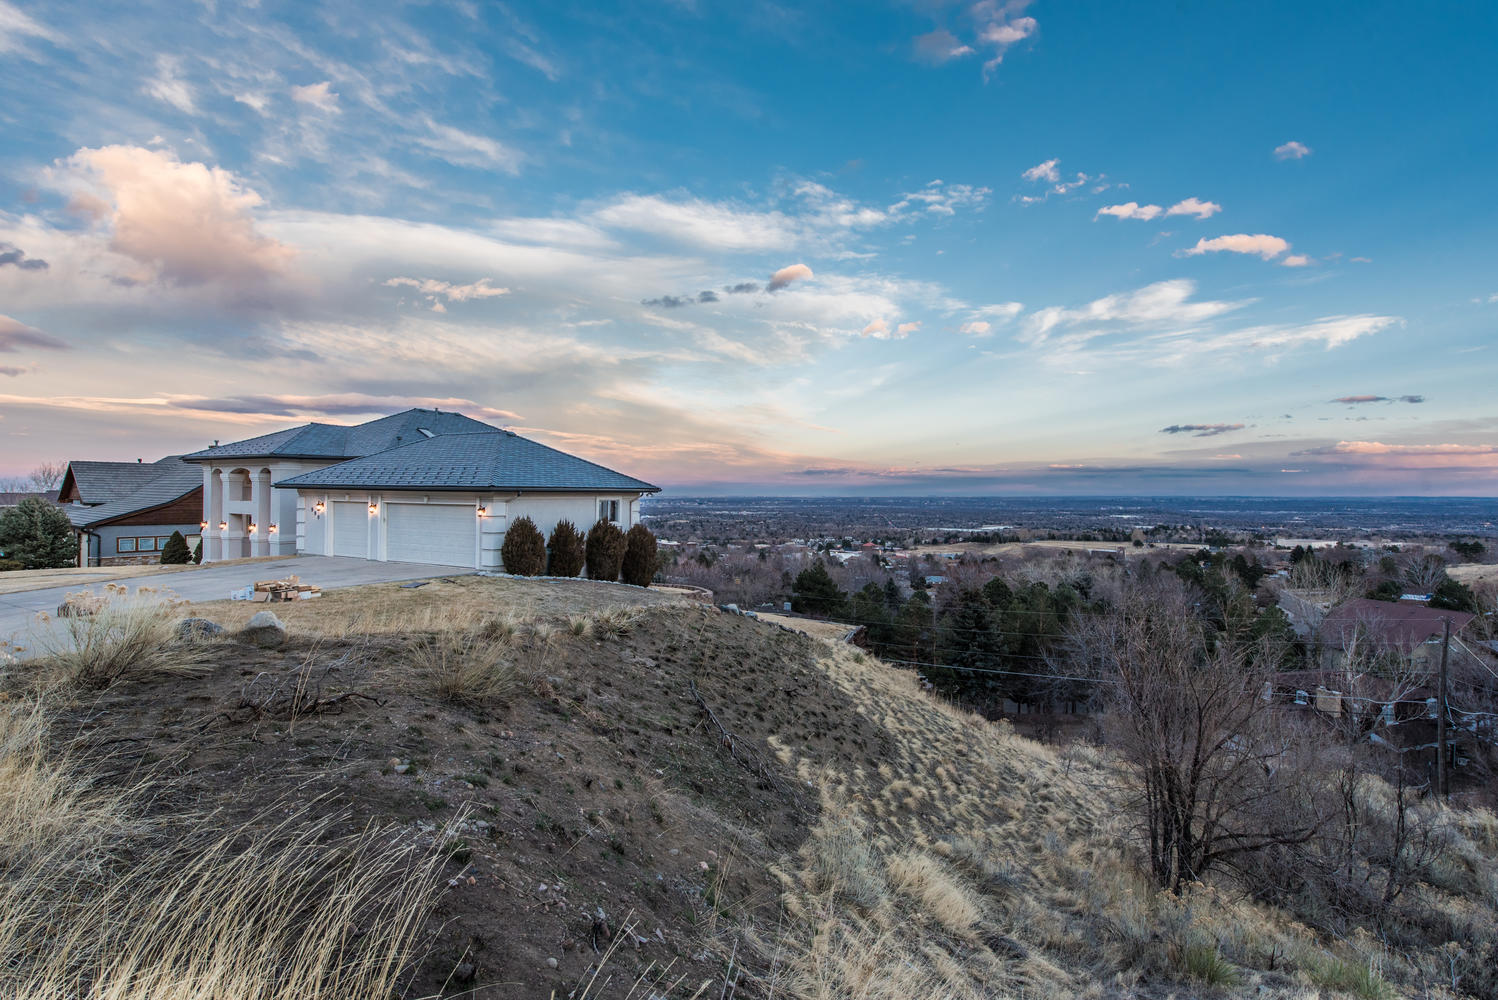 Single Family Home for Active at Magnificent views in every direction! 980 S Coors Drive Lakewood, Colorado 80228 United States